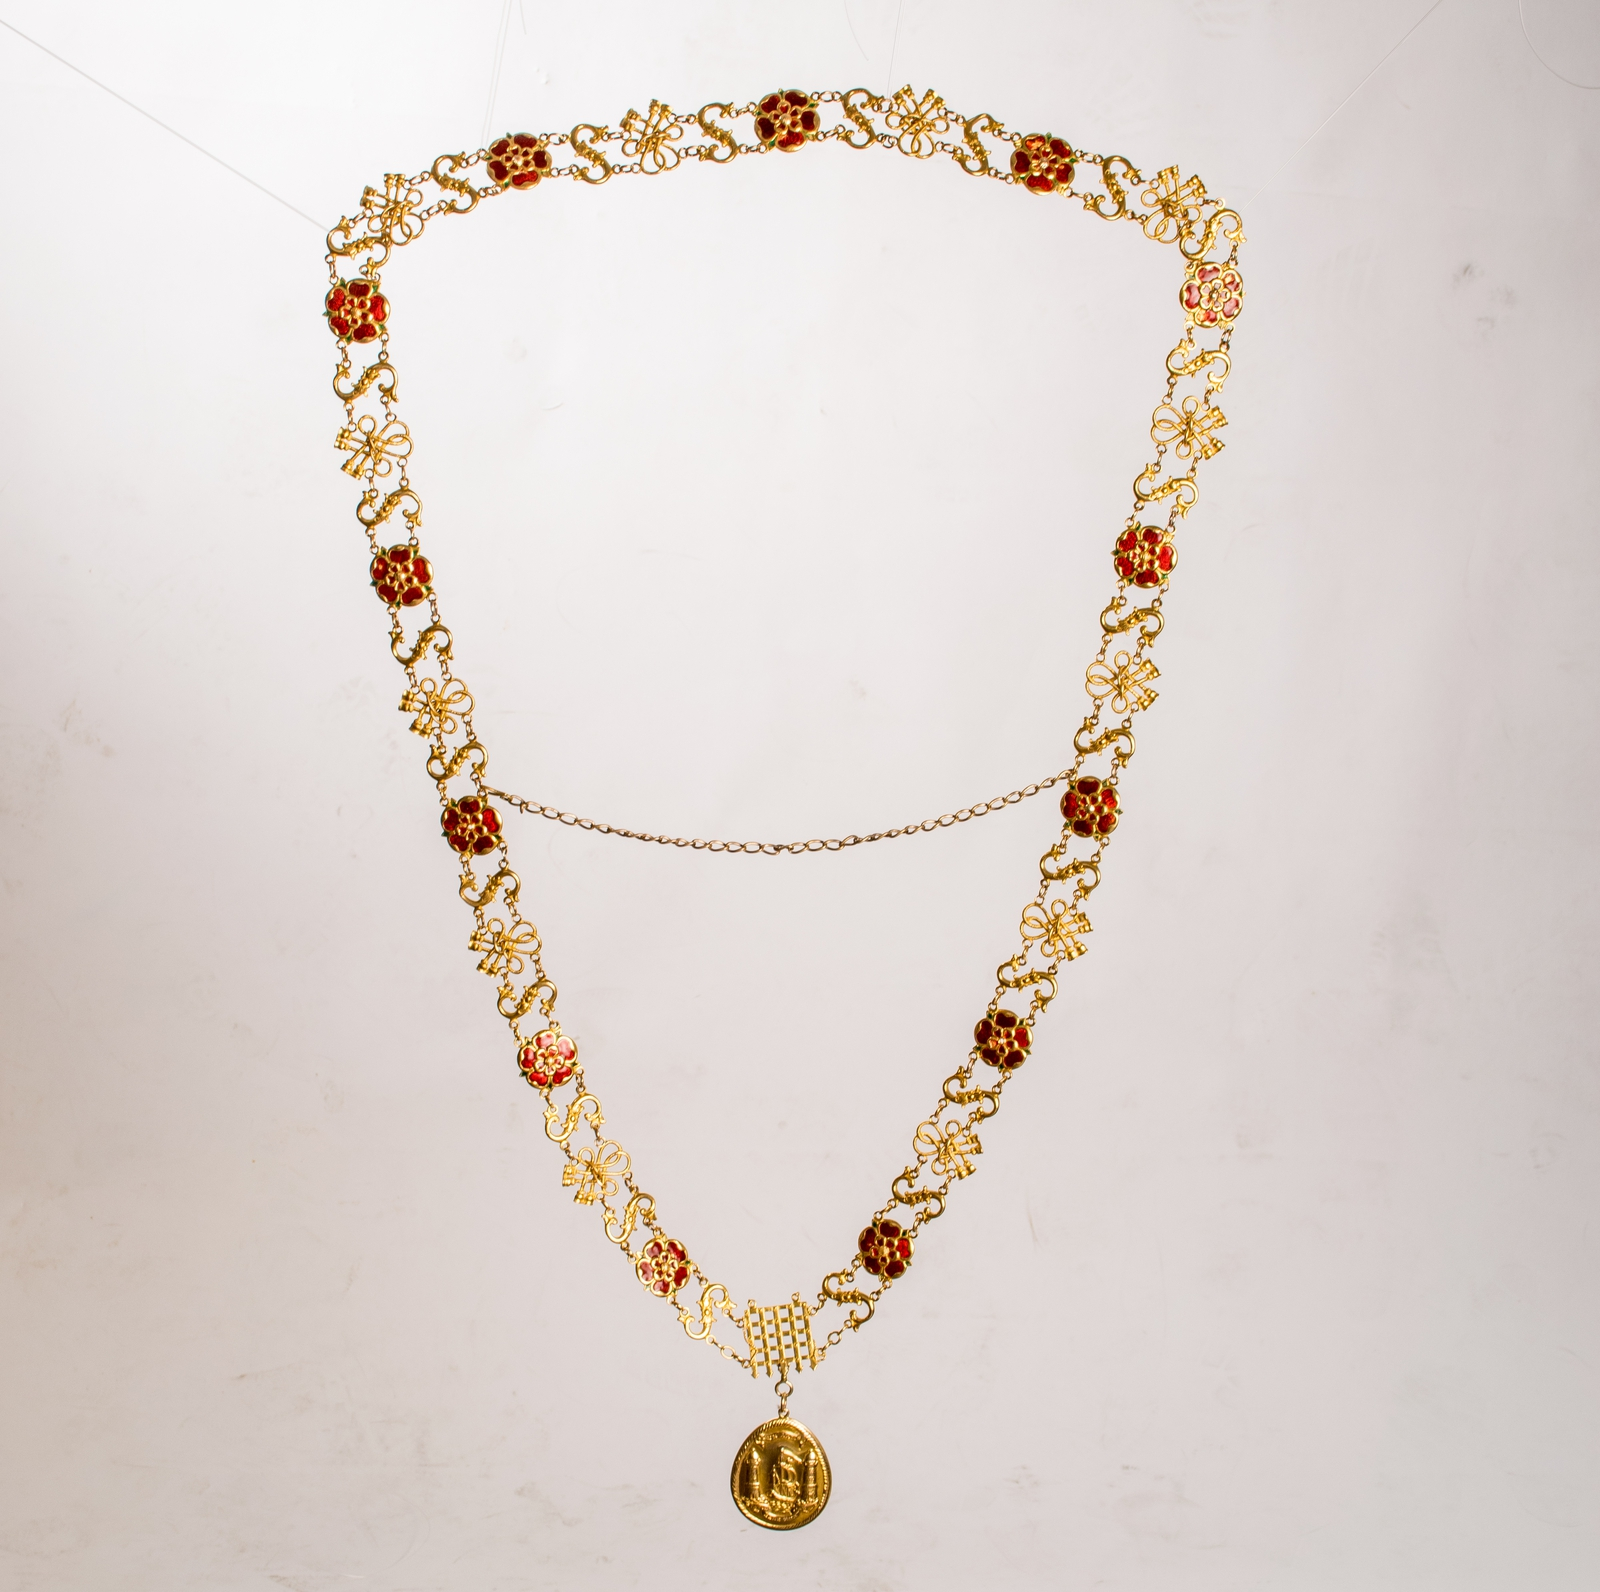 Image - Cork City's Lord Mayor's chain of office